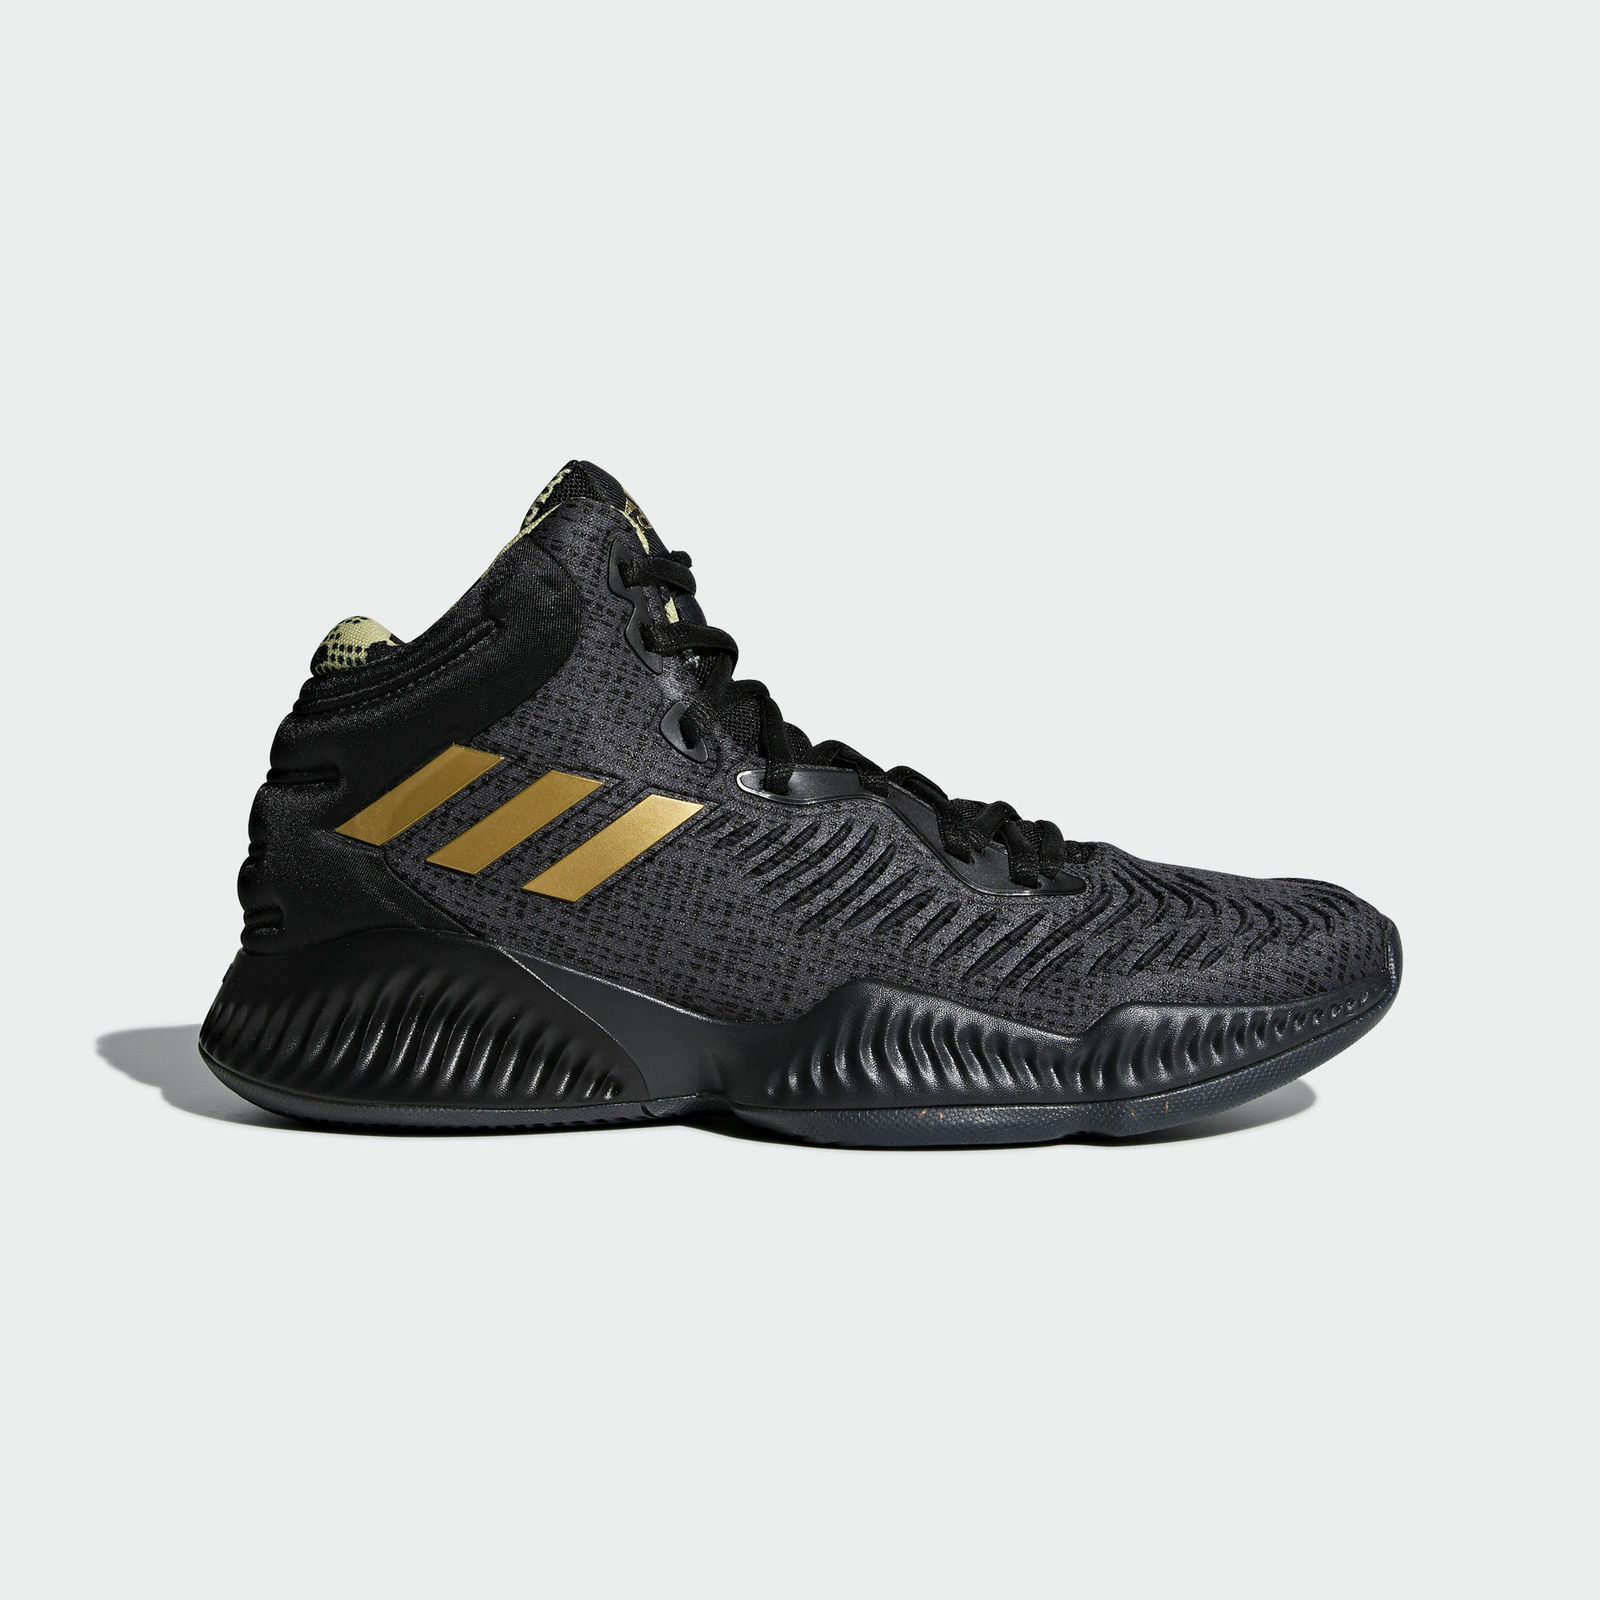 Adidas Mad Bounce 2018 [B41870] Men Basketball shoes Black gold